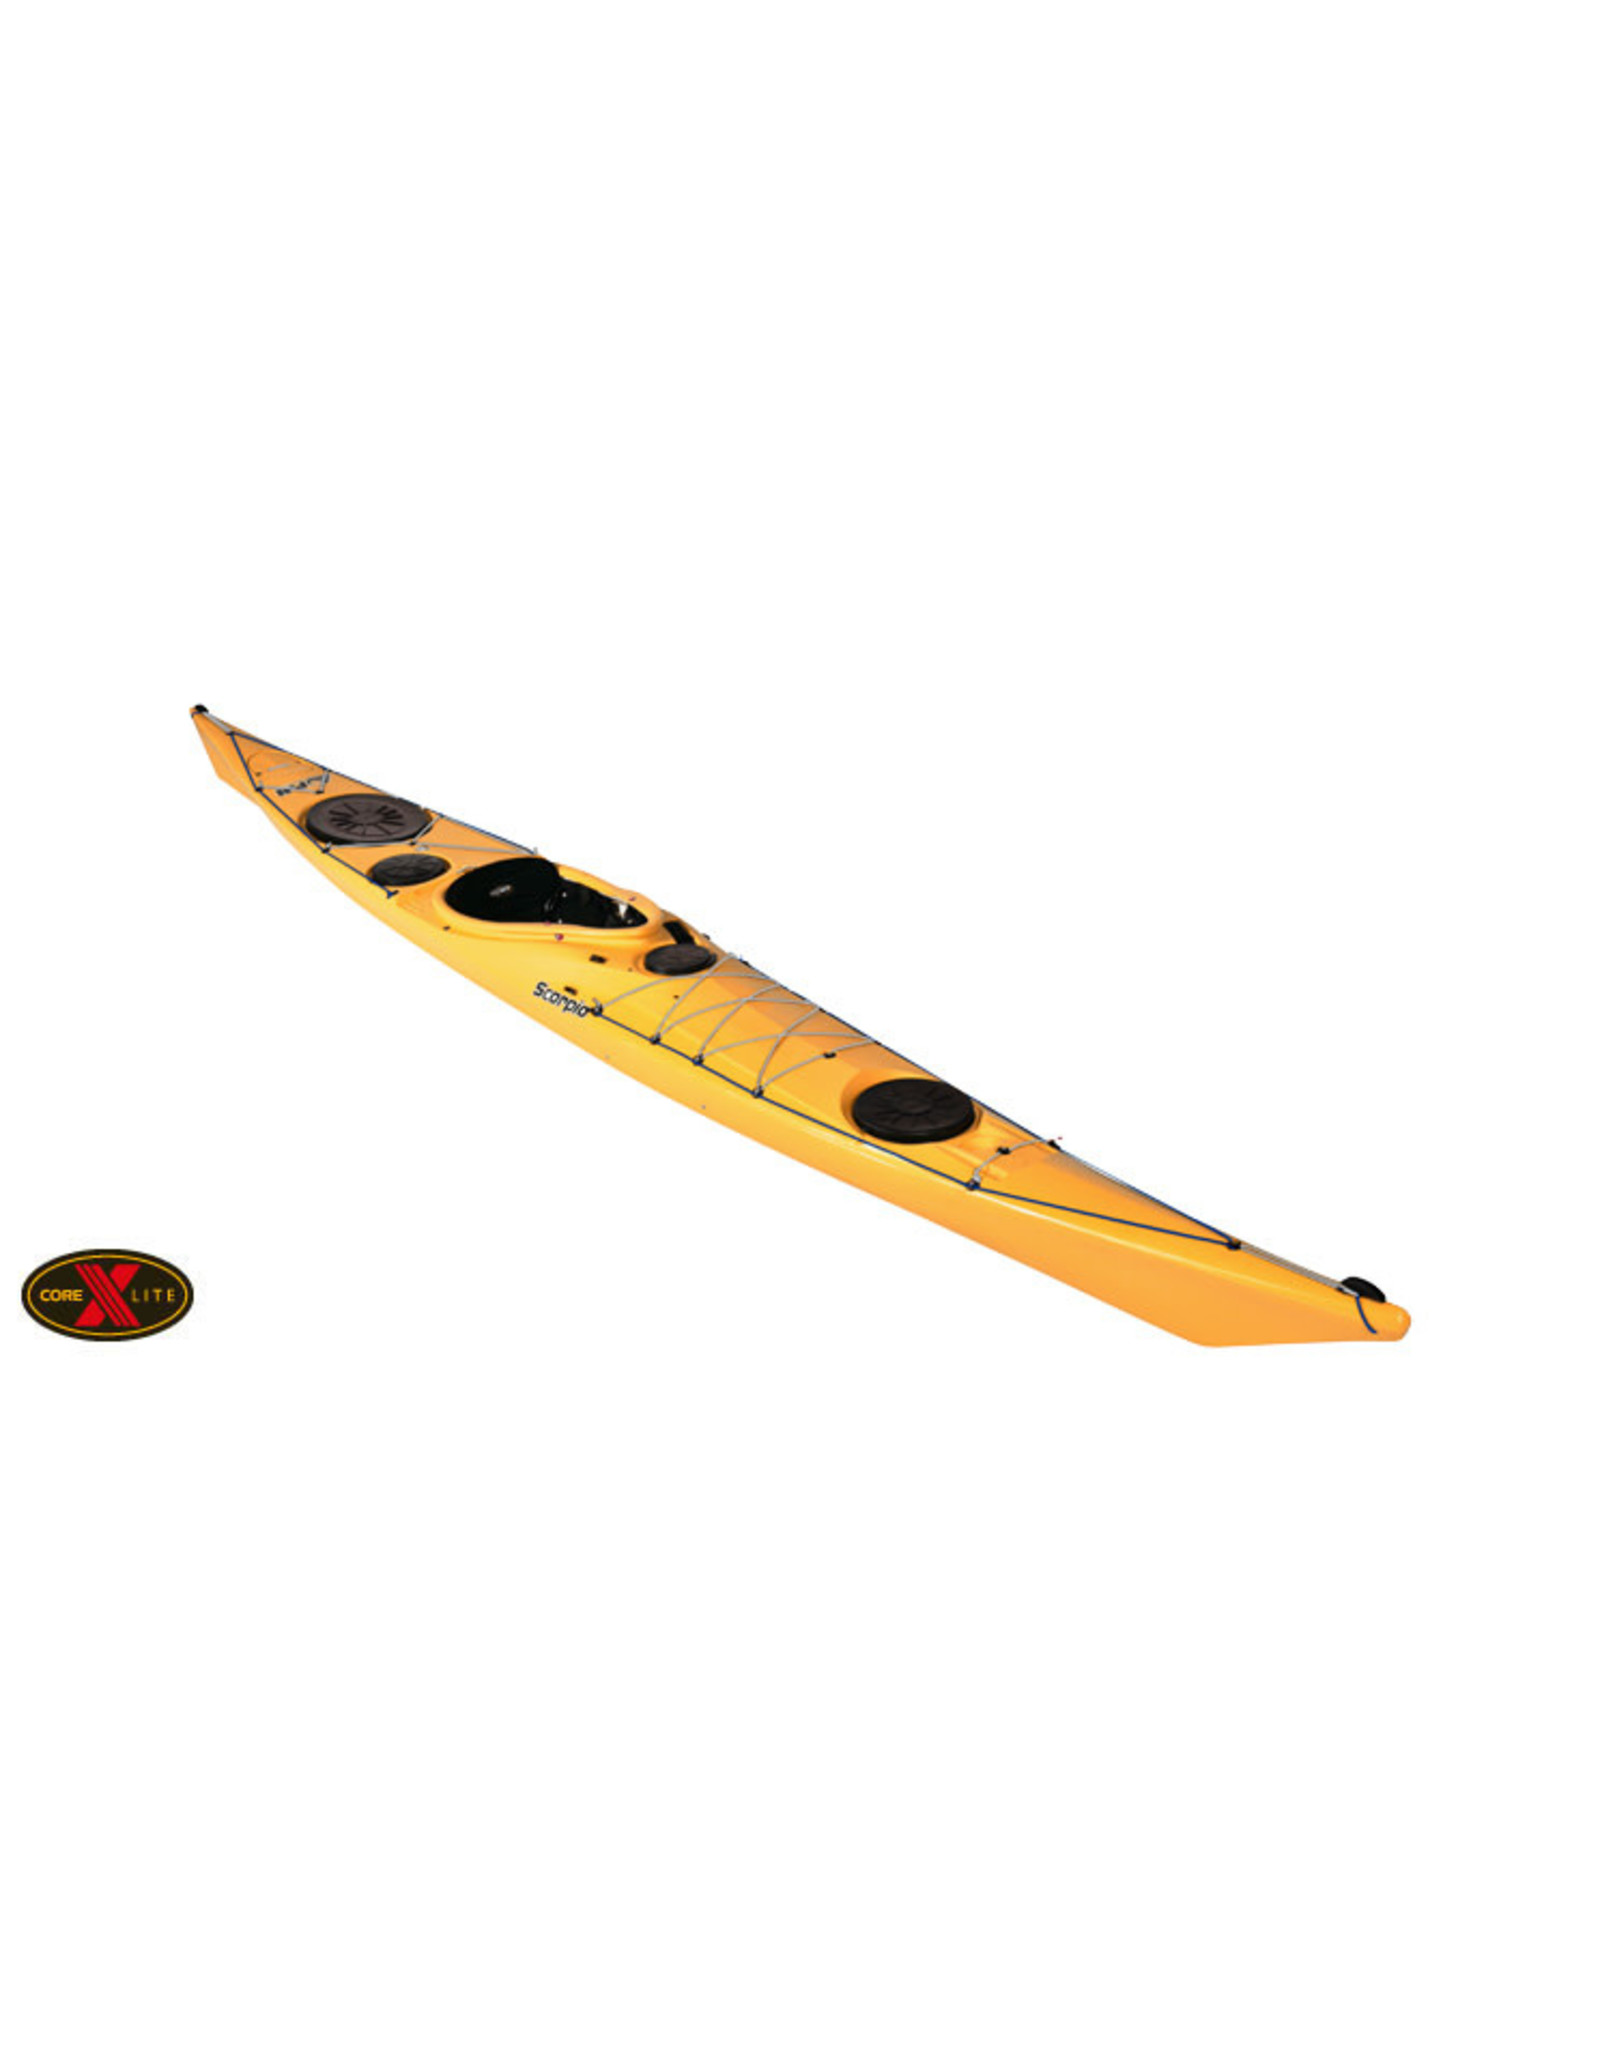 P&H Custom Sea Kayaks P&H kayak Scorpio MKII CoreLite X with skeg